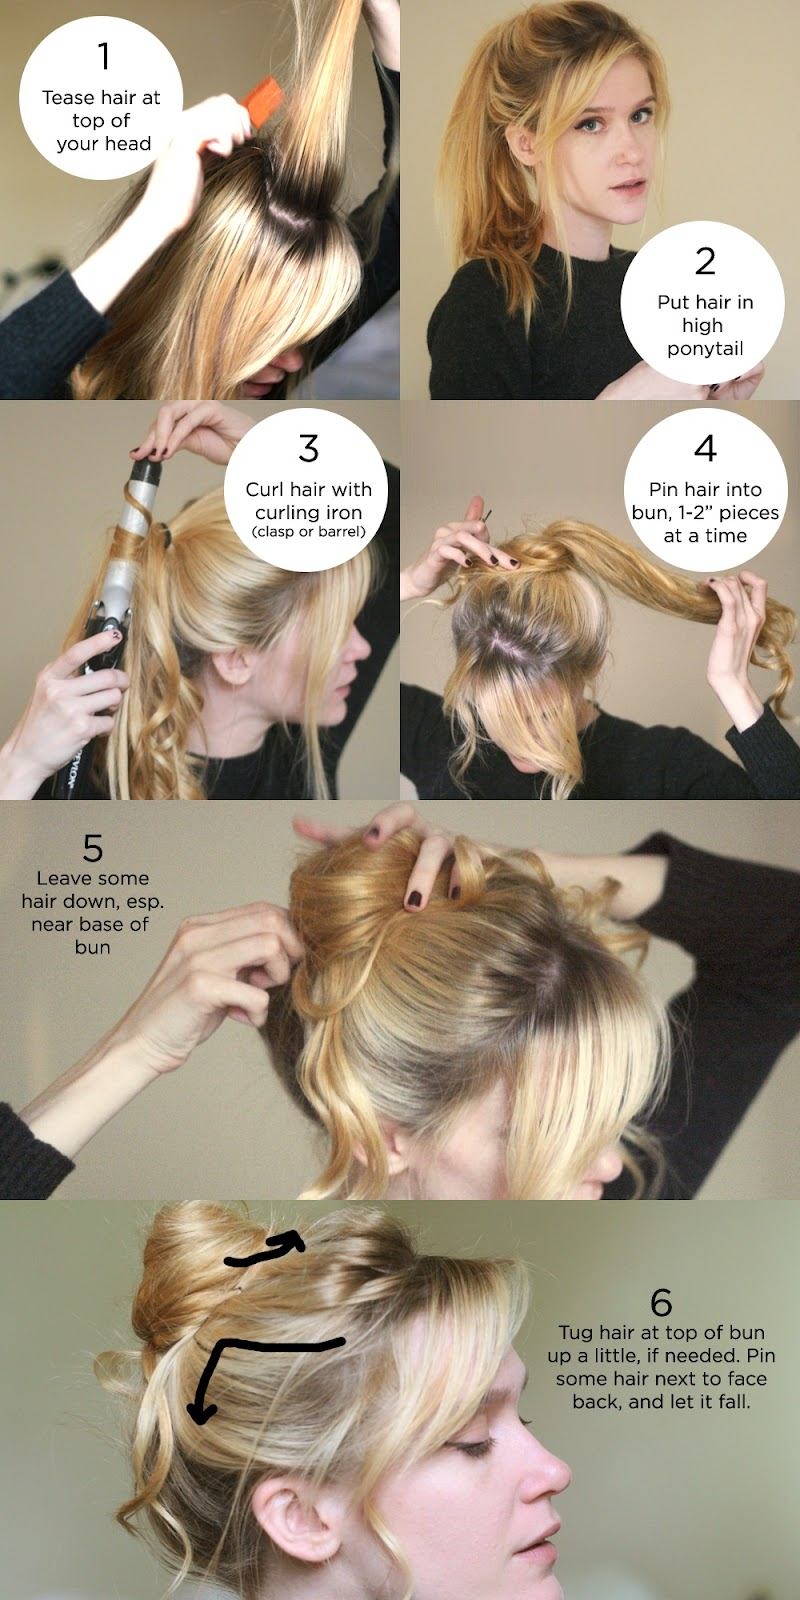 How to style a Messy bun tutorial